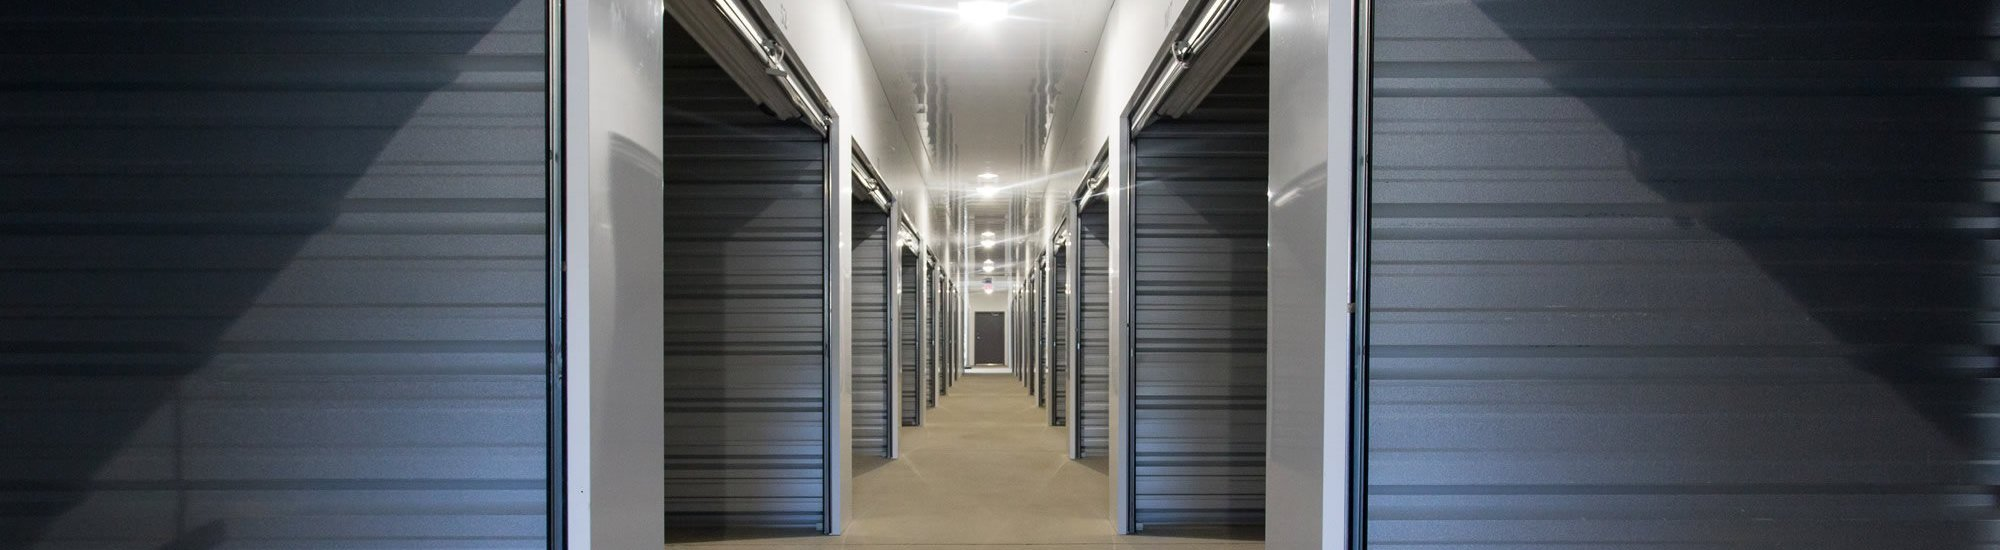 Ideal Movers and Storage, Self Storage, Moving Services, Moving Help, Movers in Western MA - Now with two convenient state-of-the-art Self-Storage Facilities in Hadley, MA and South Deerfield, MA